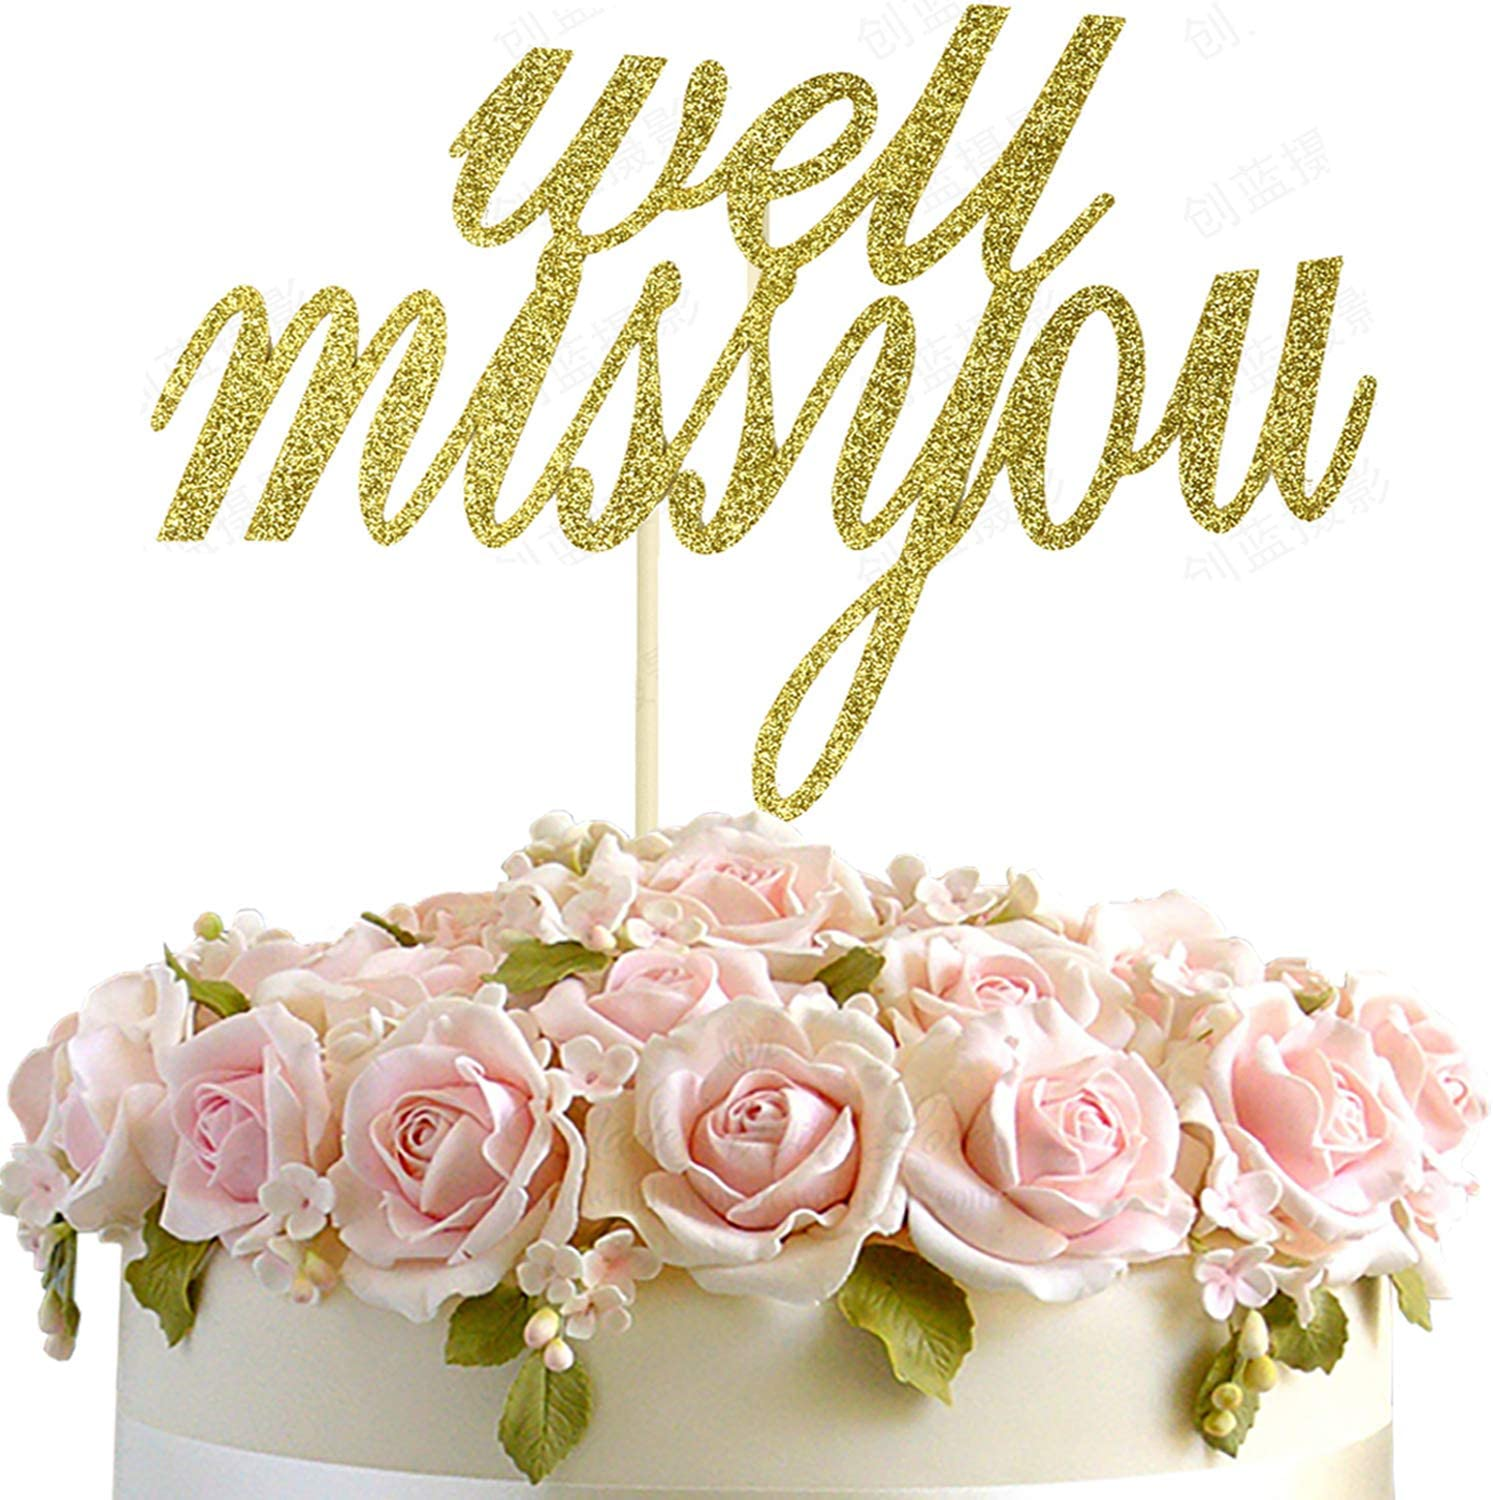 Job Change Going Away Party Decoration Supplies Farewell Party Gold Glitter Well Miss You Cake Topper for Happy Retirement Graduation